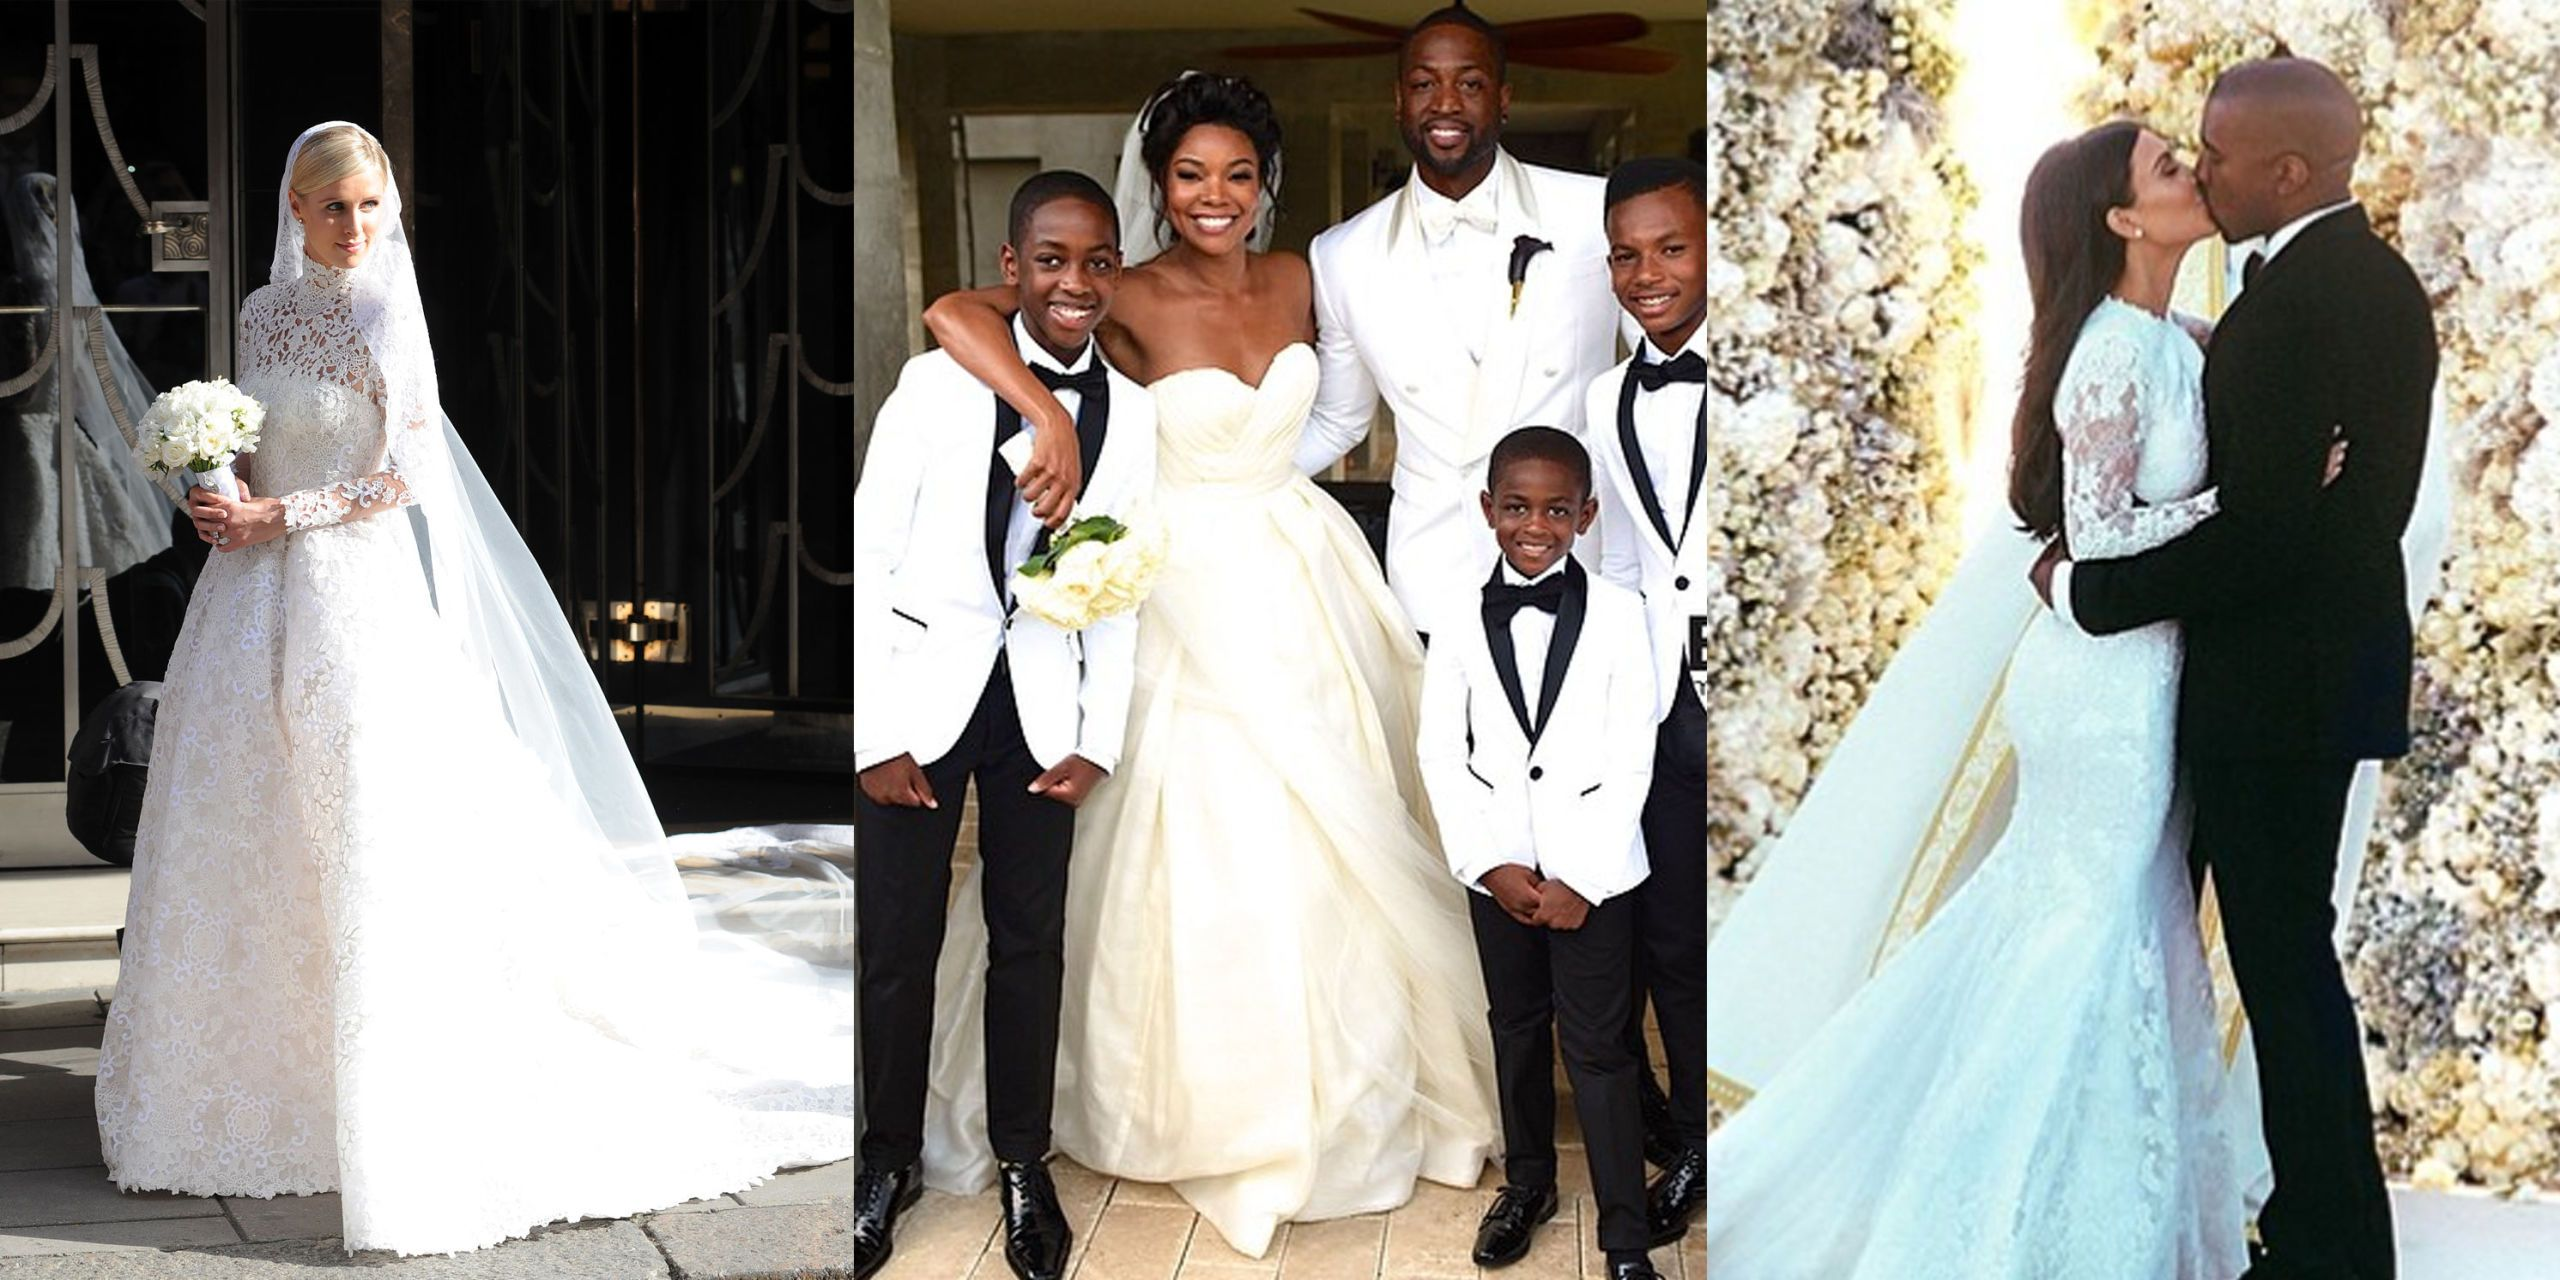 The 18 Best Celebrity Wedding Dresses We've Ever Seen